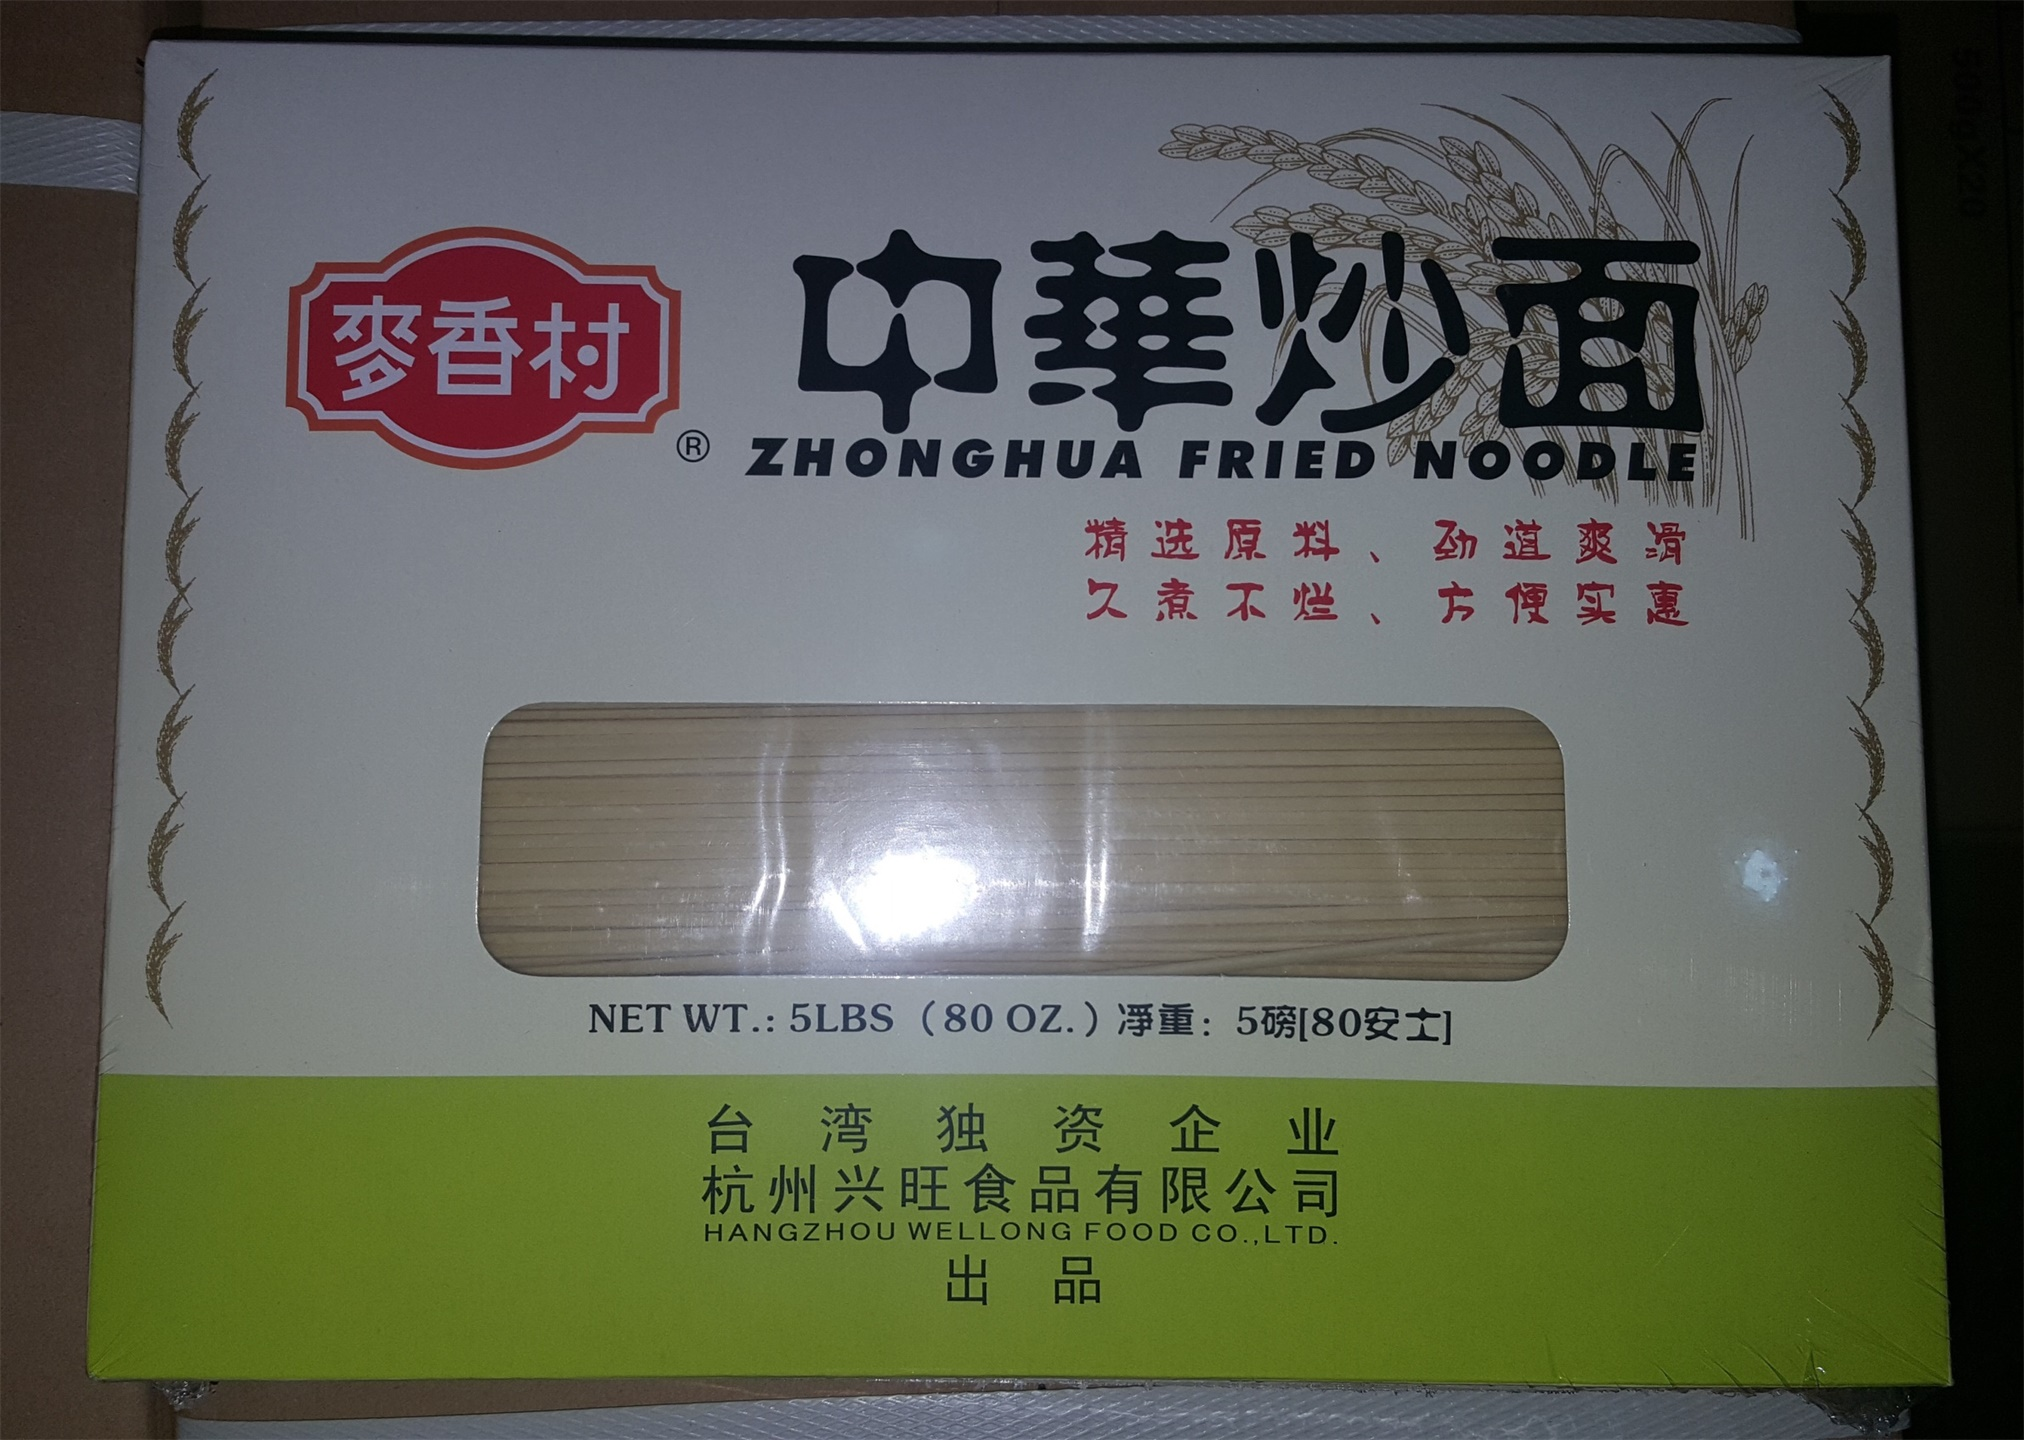 Fried Noodle in 5LBS Pack